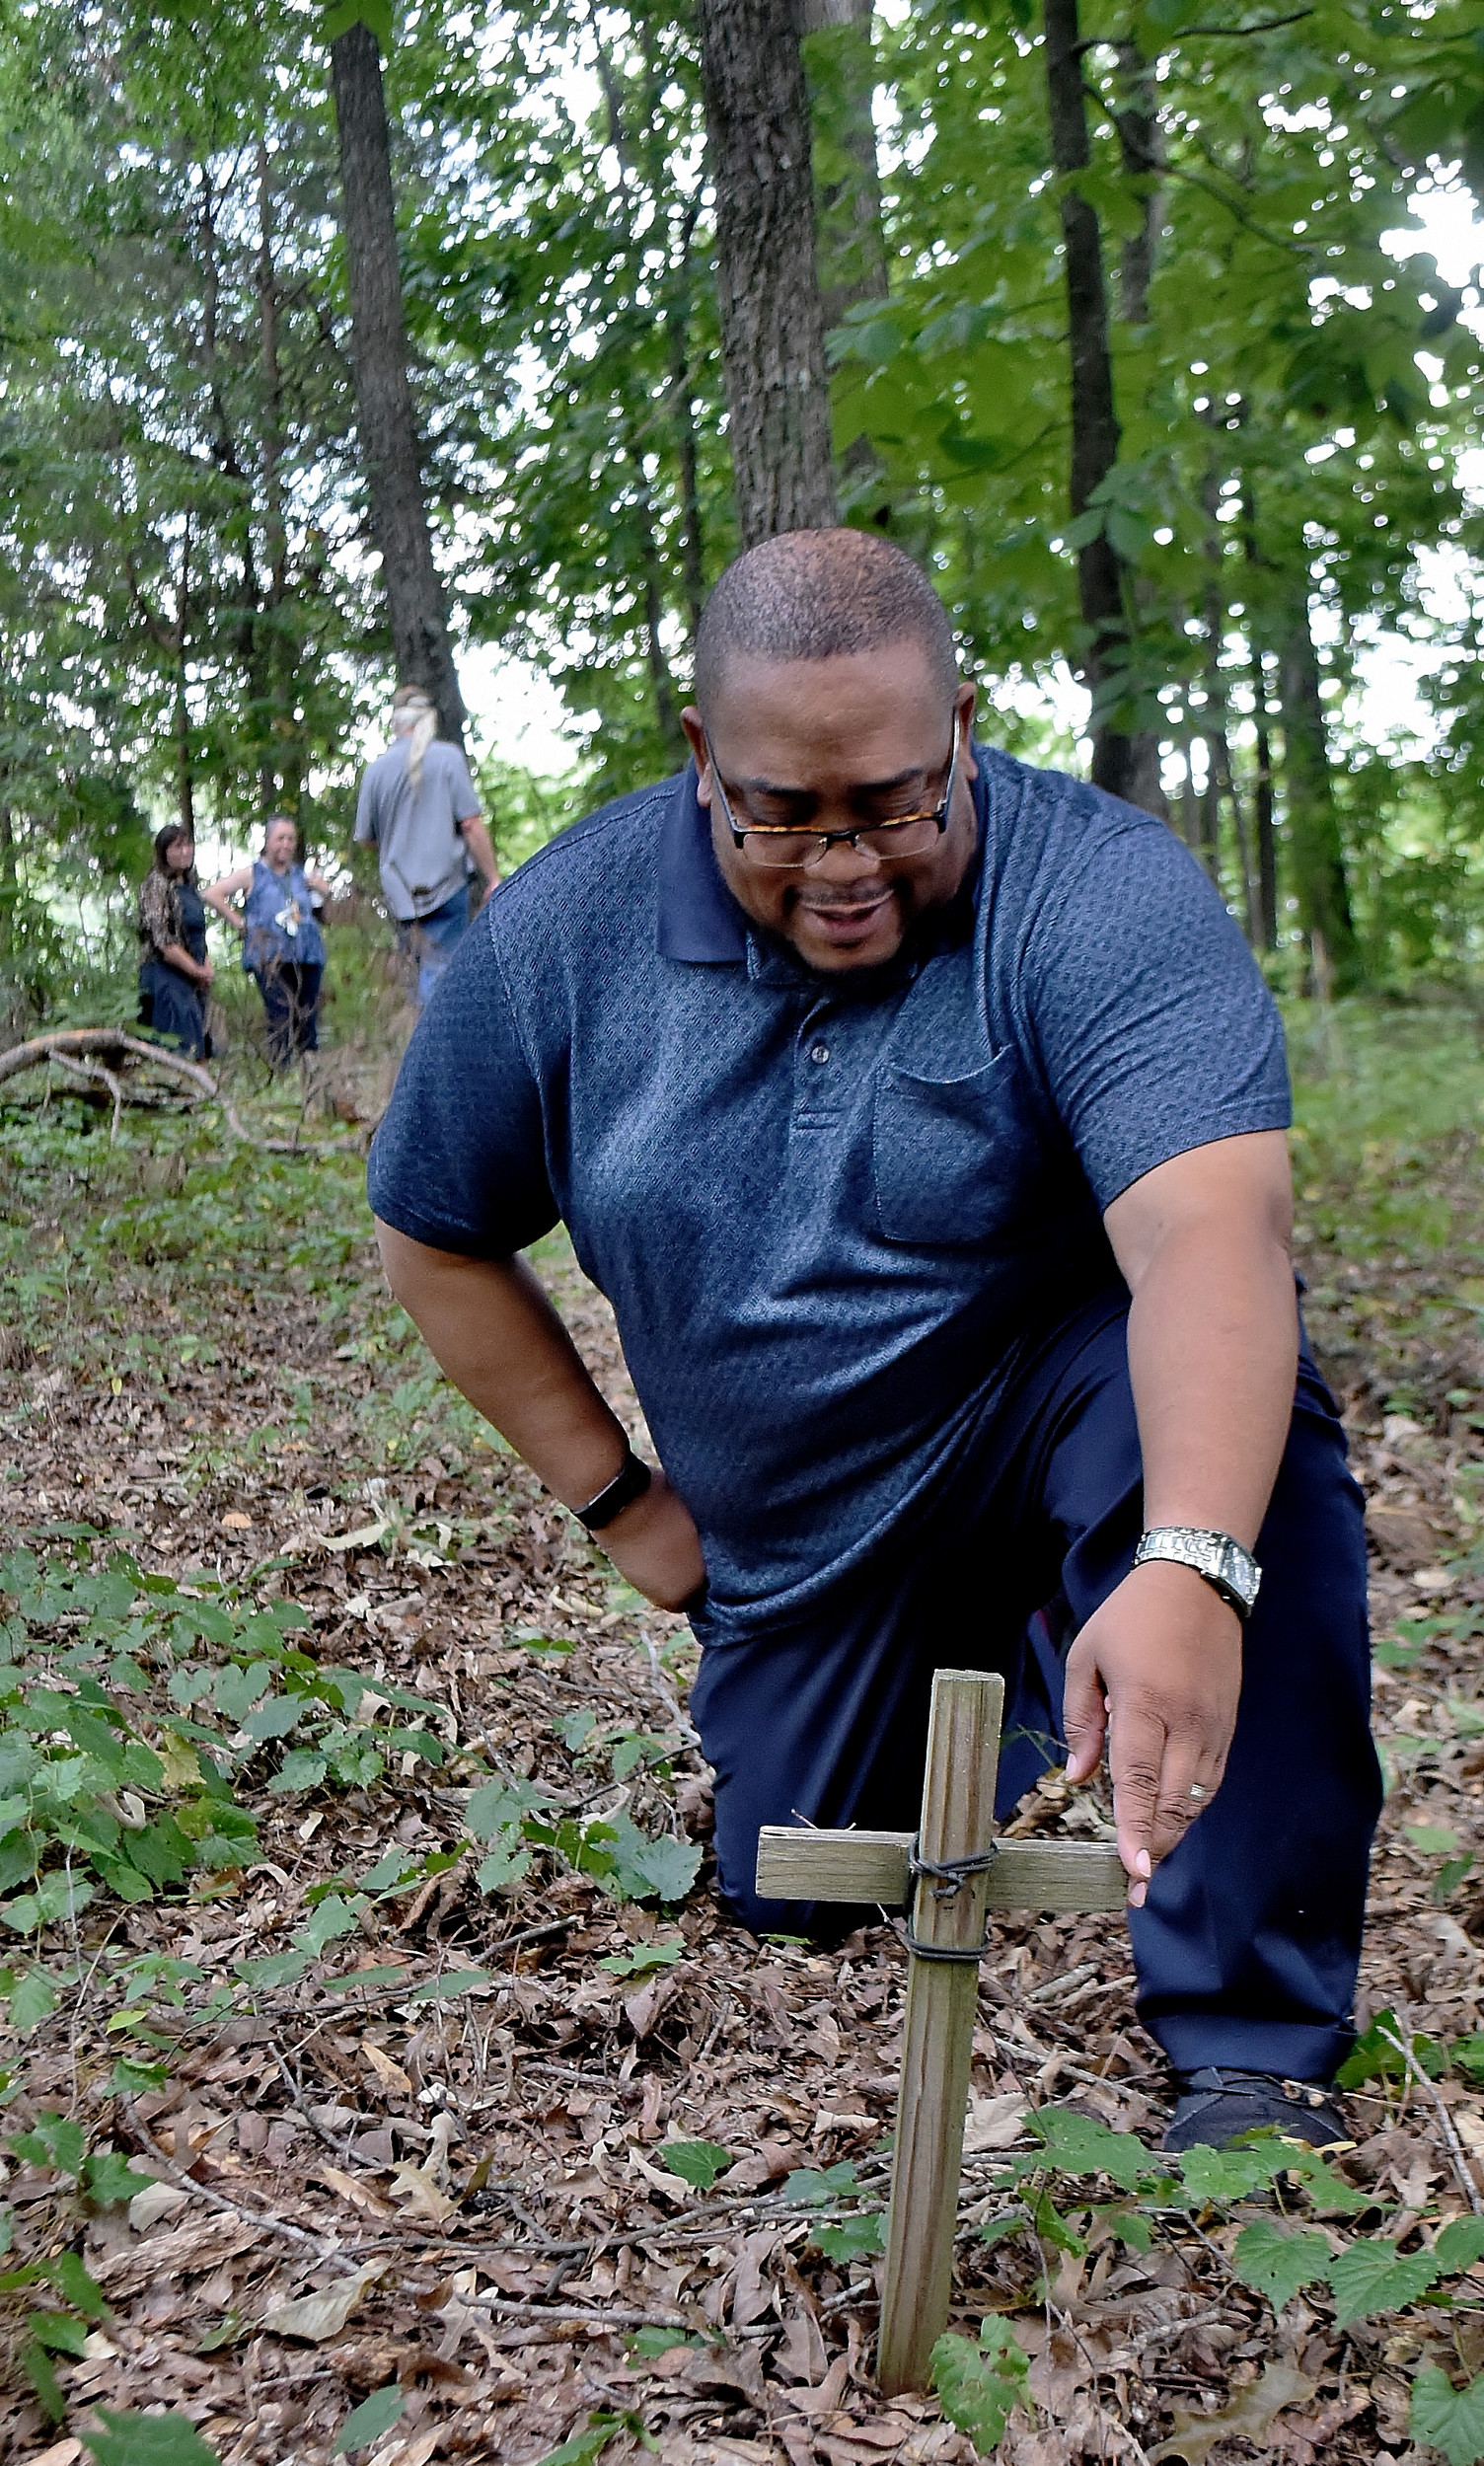 Euharlee Planning and Zoning Director Charles Reese examines one of the hundreds of wooden crosses representing a grave in the city's Black Pioneers Cemetery.